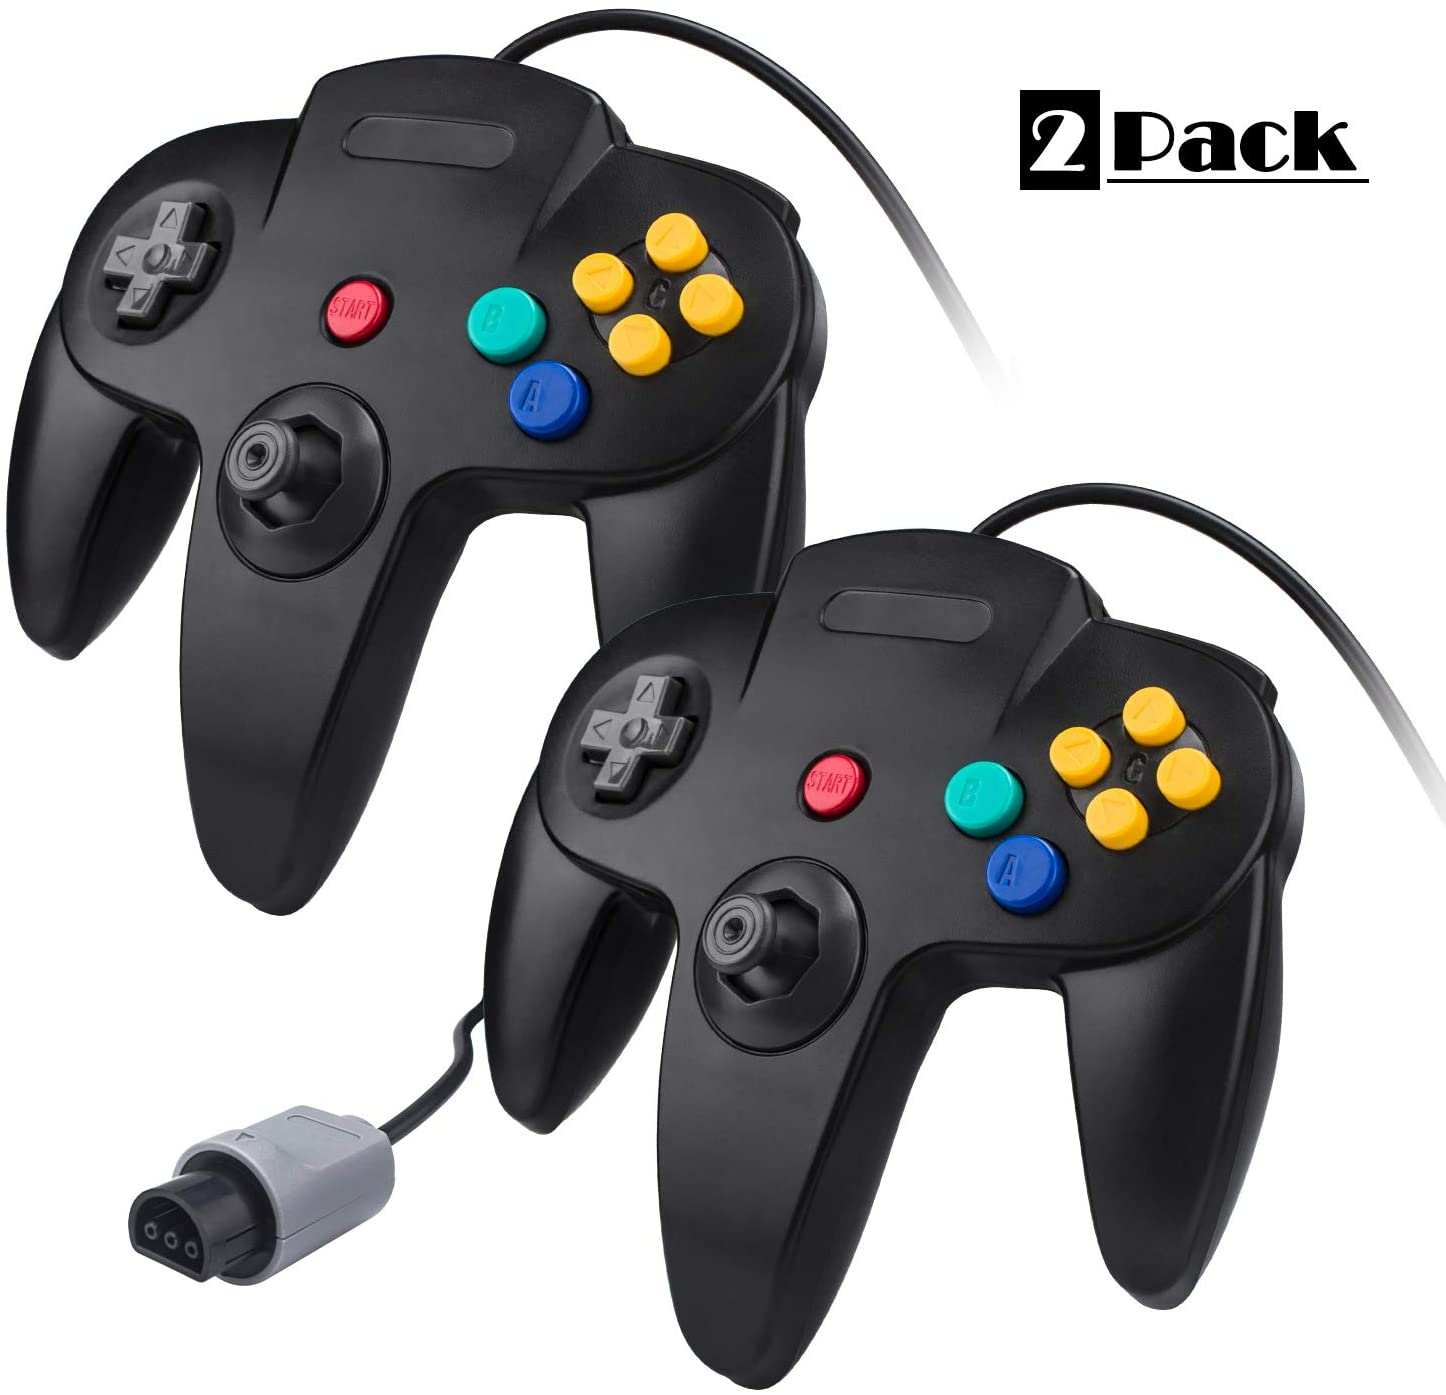 2 Pack N64 Controller, TechKen Classic Wired N64 64-bit Game Joystick Compatible with Ultra 64 Video Game Console N64 System